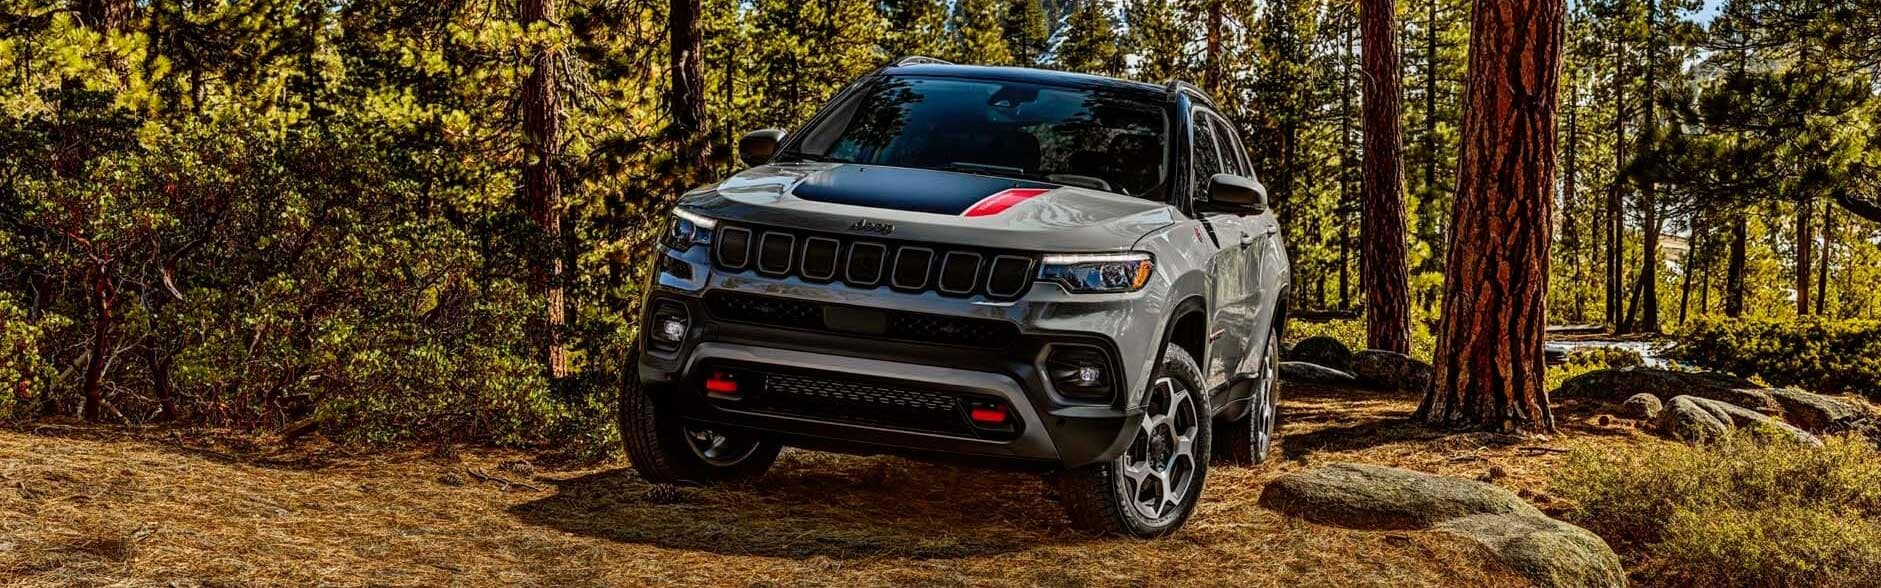 2022 Jeep Compass in New Orleans